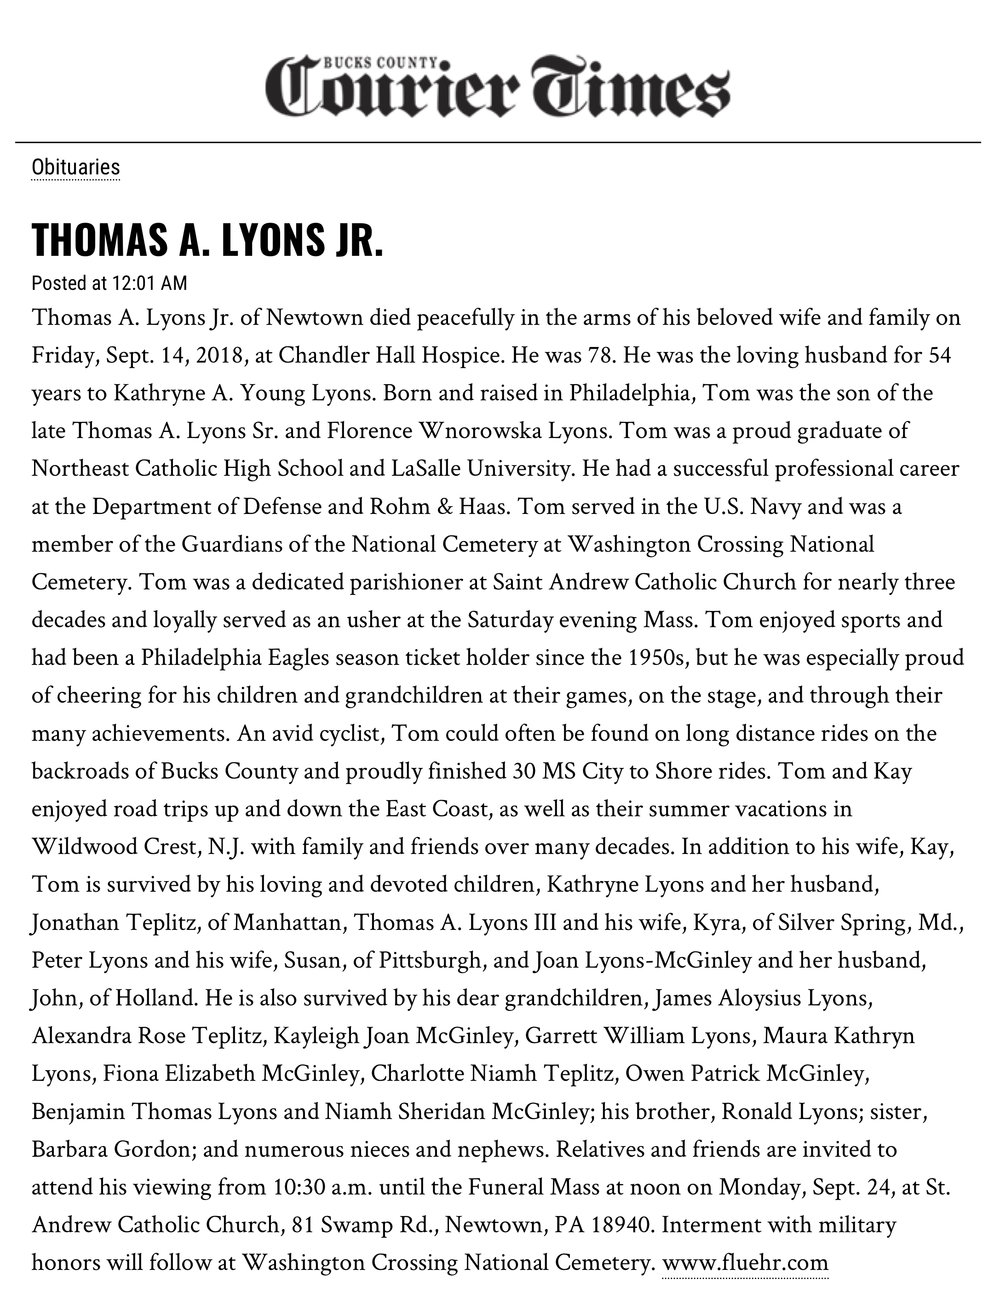 Tom Lyons Obituary.jpg